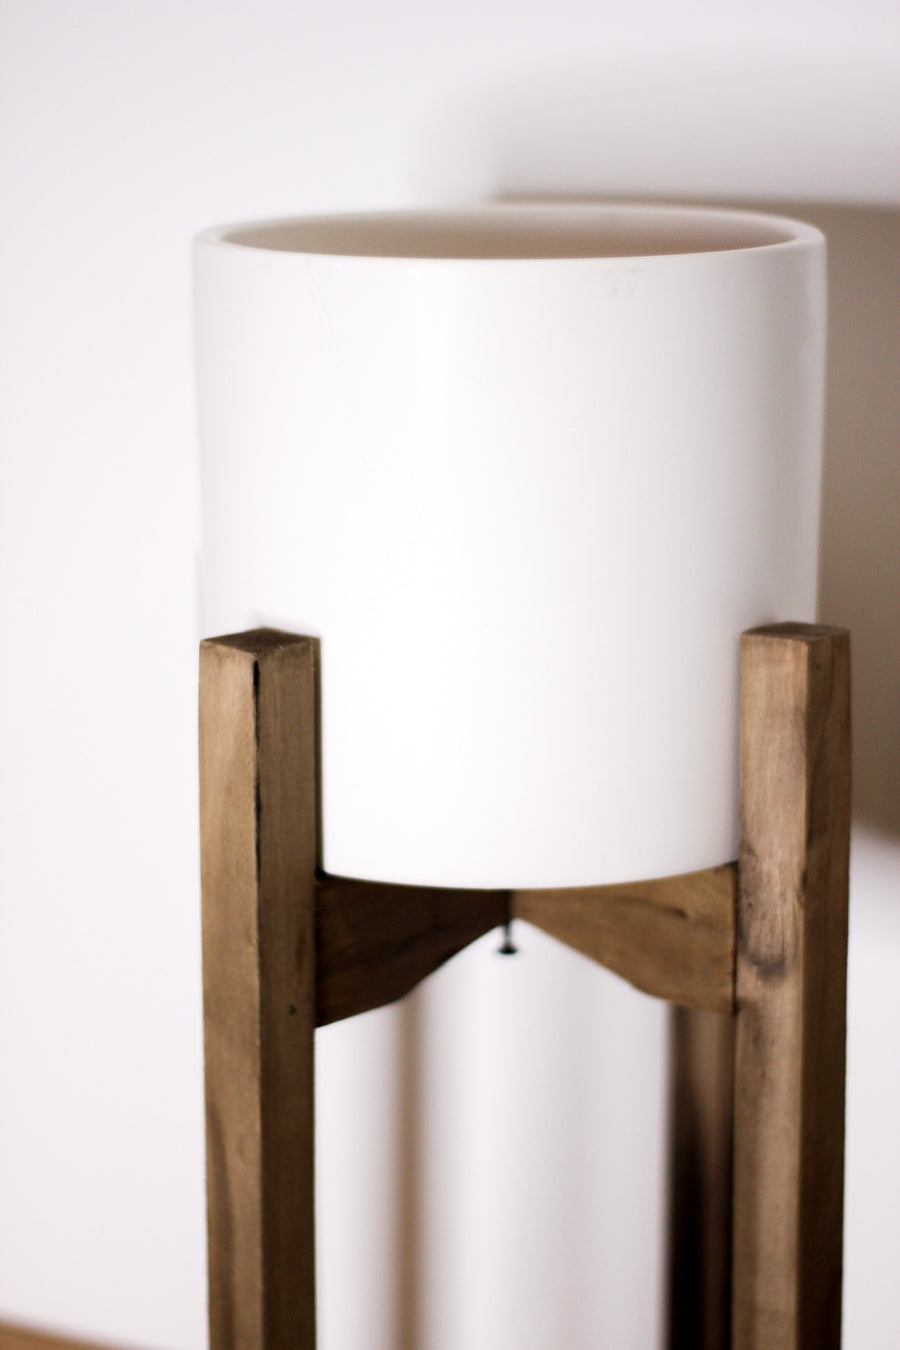 CERAMIC POT ON RUSTIC WOOD STAND